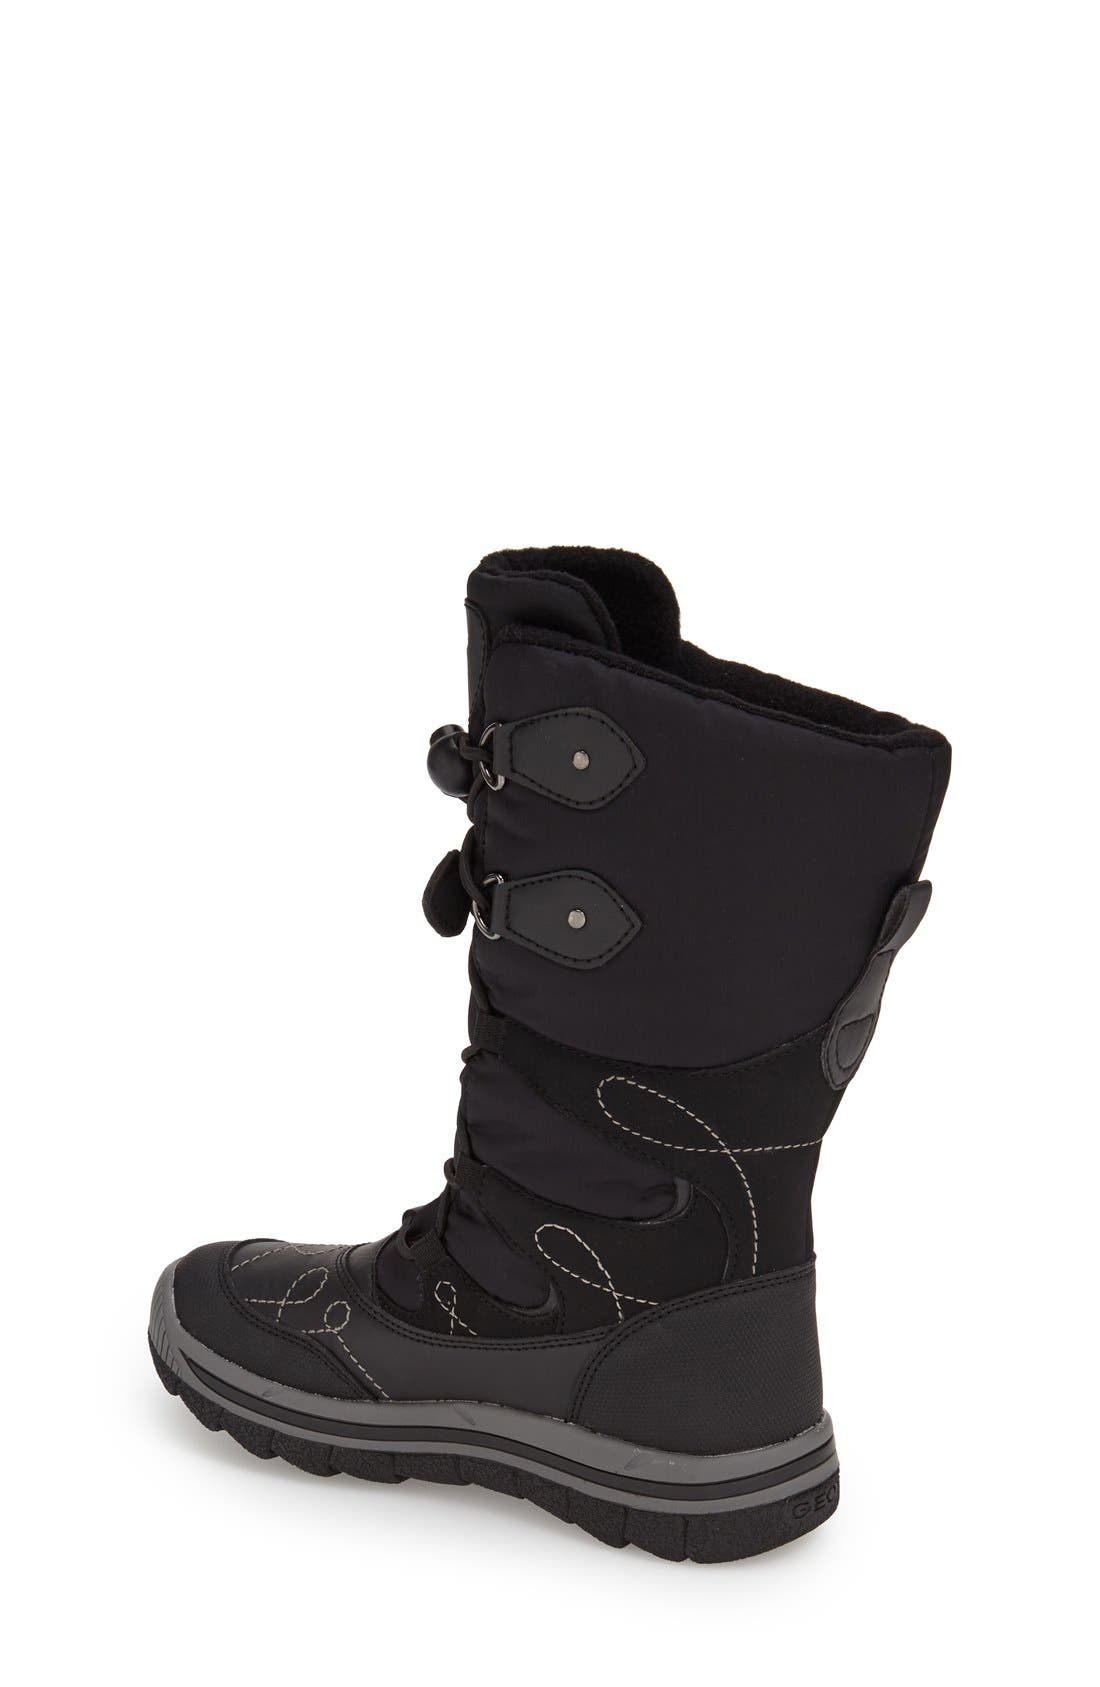 'Overland ABX' Waterproof Boot,                             Alternate thumbnail 2, color,                             001